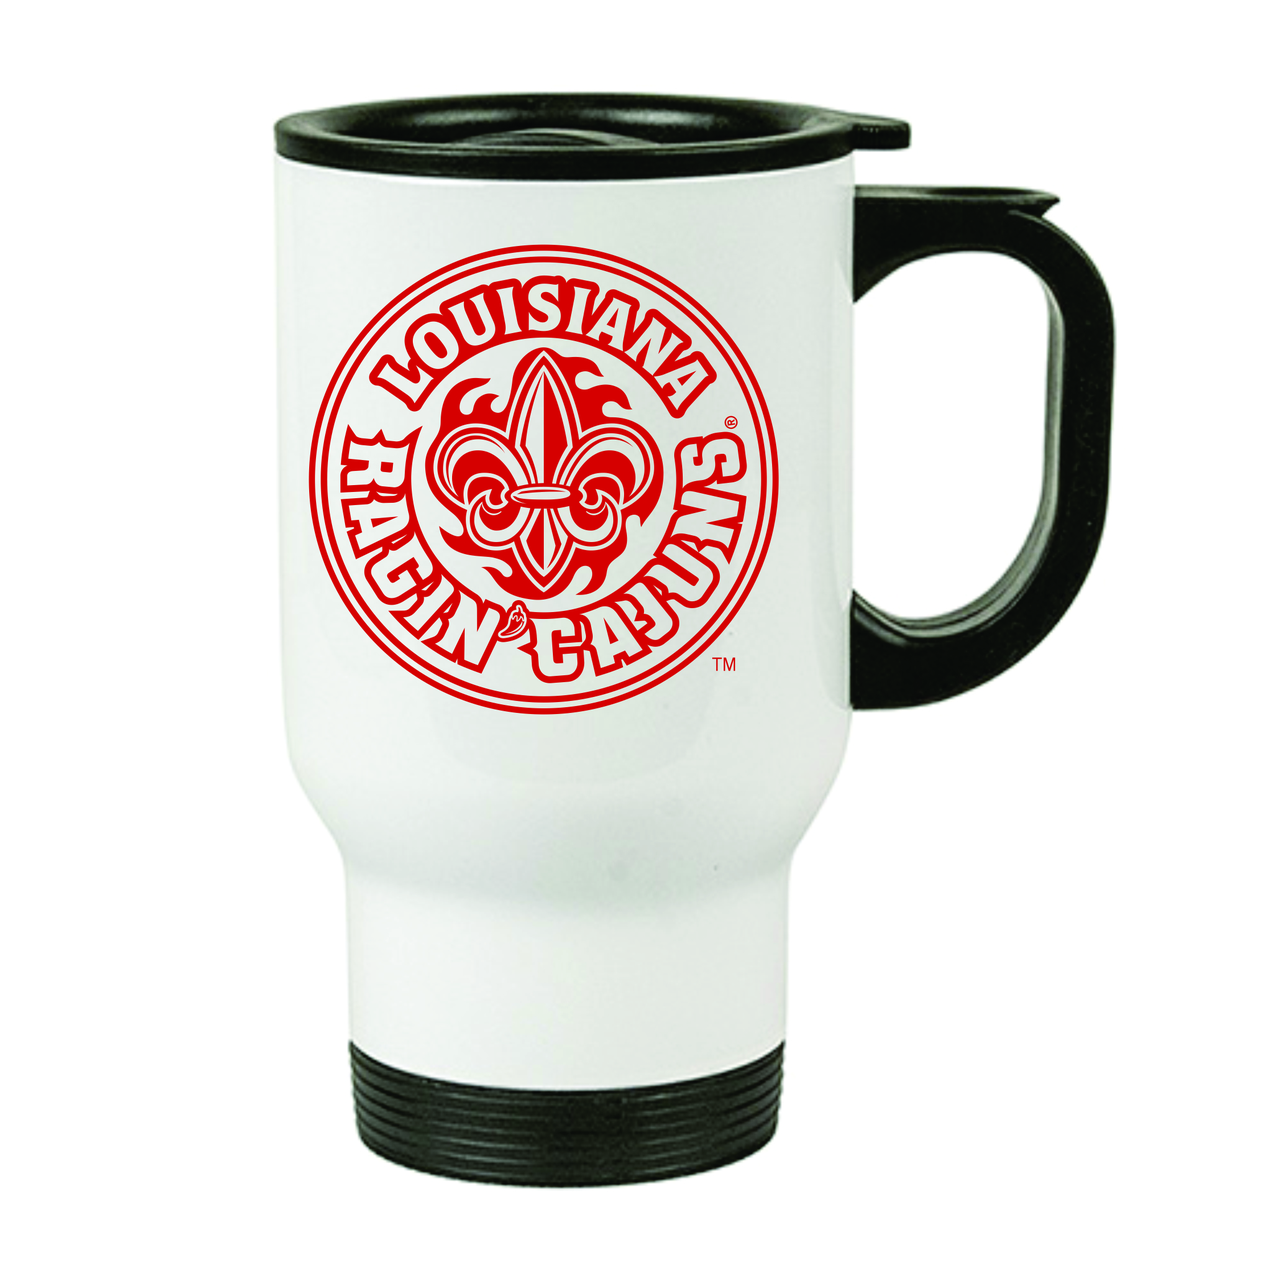 Louisiana Ragin' Cajuns Stainless Steel Travel Mug, 14oz.